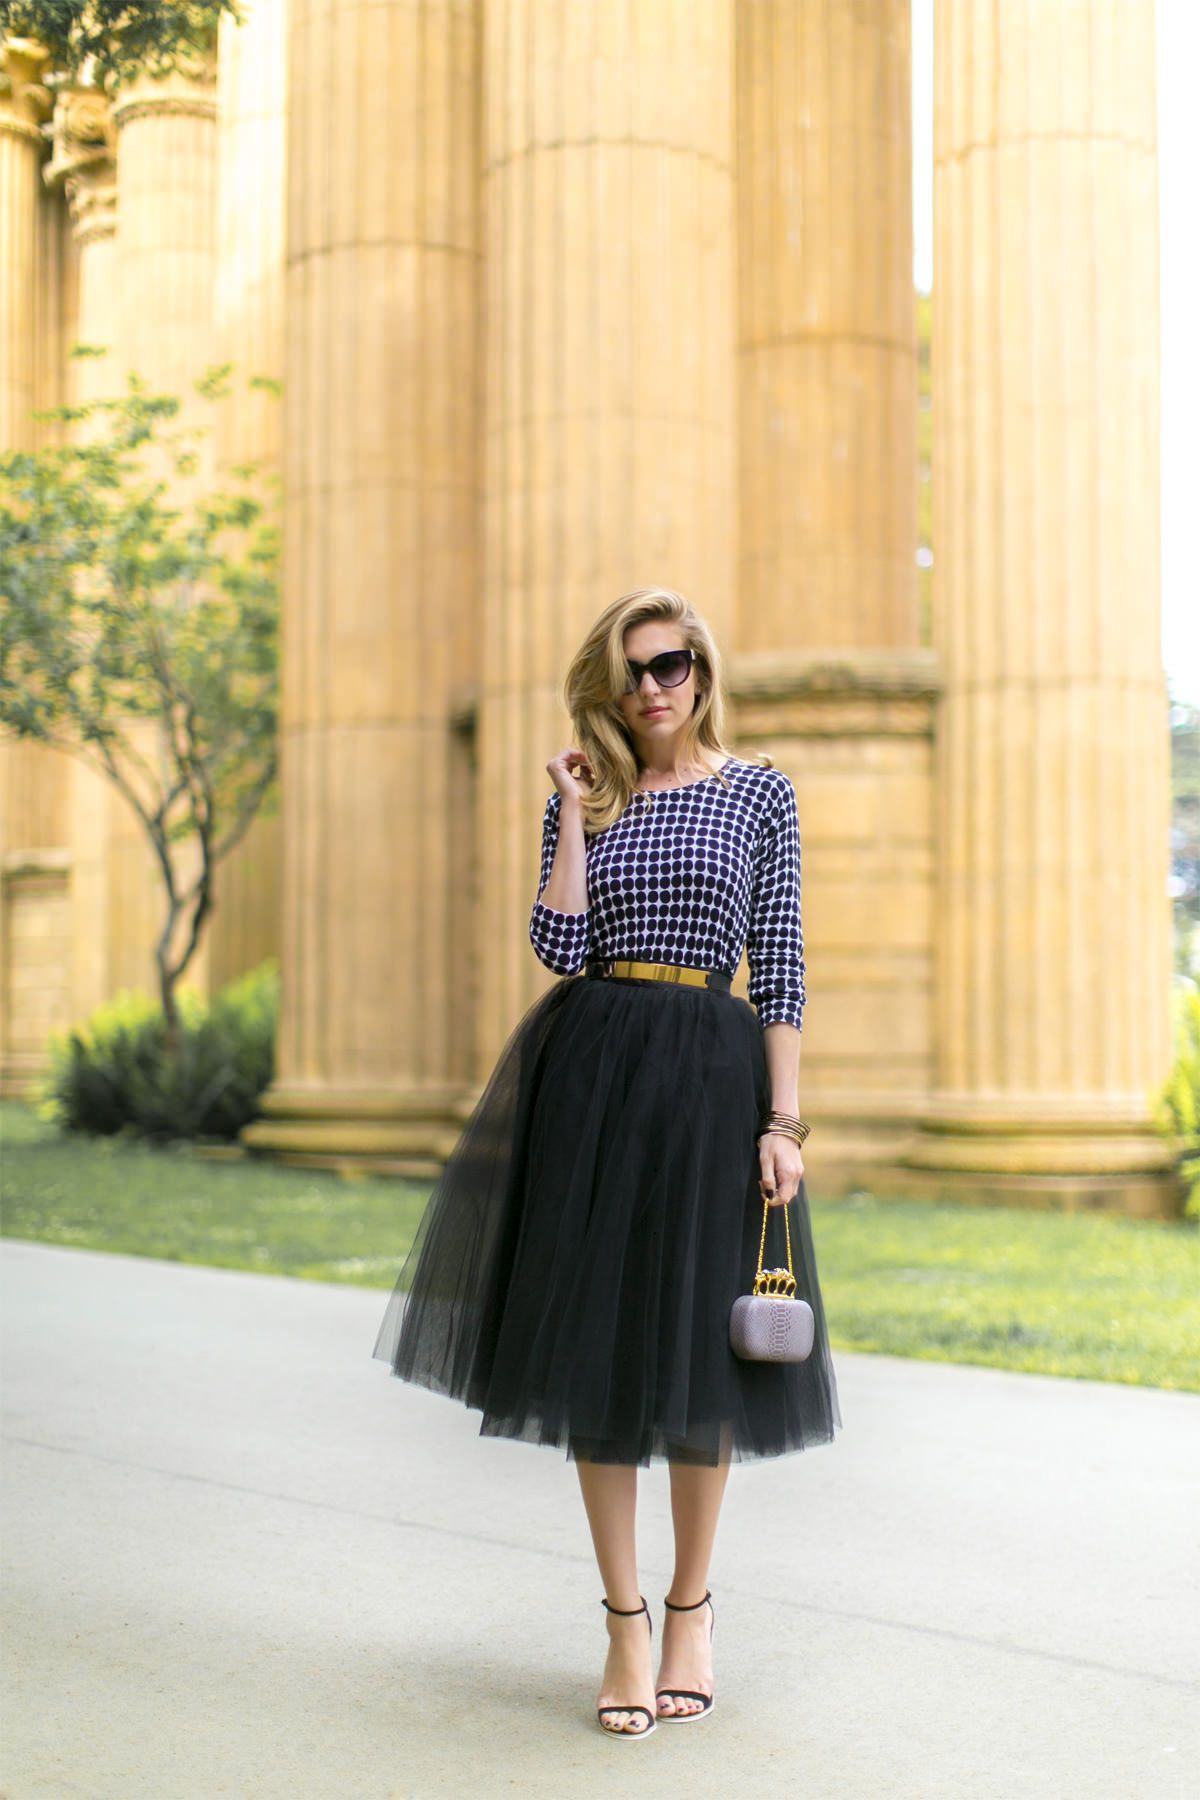 Black Tulle Skirt And Polka Dot Shirt Tulle Skirt Black